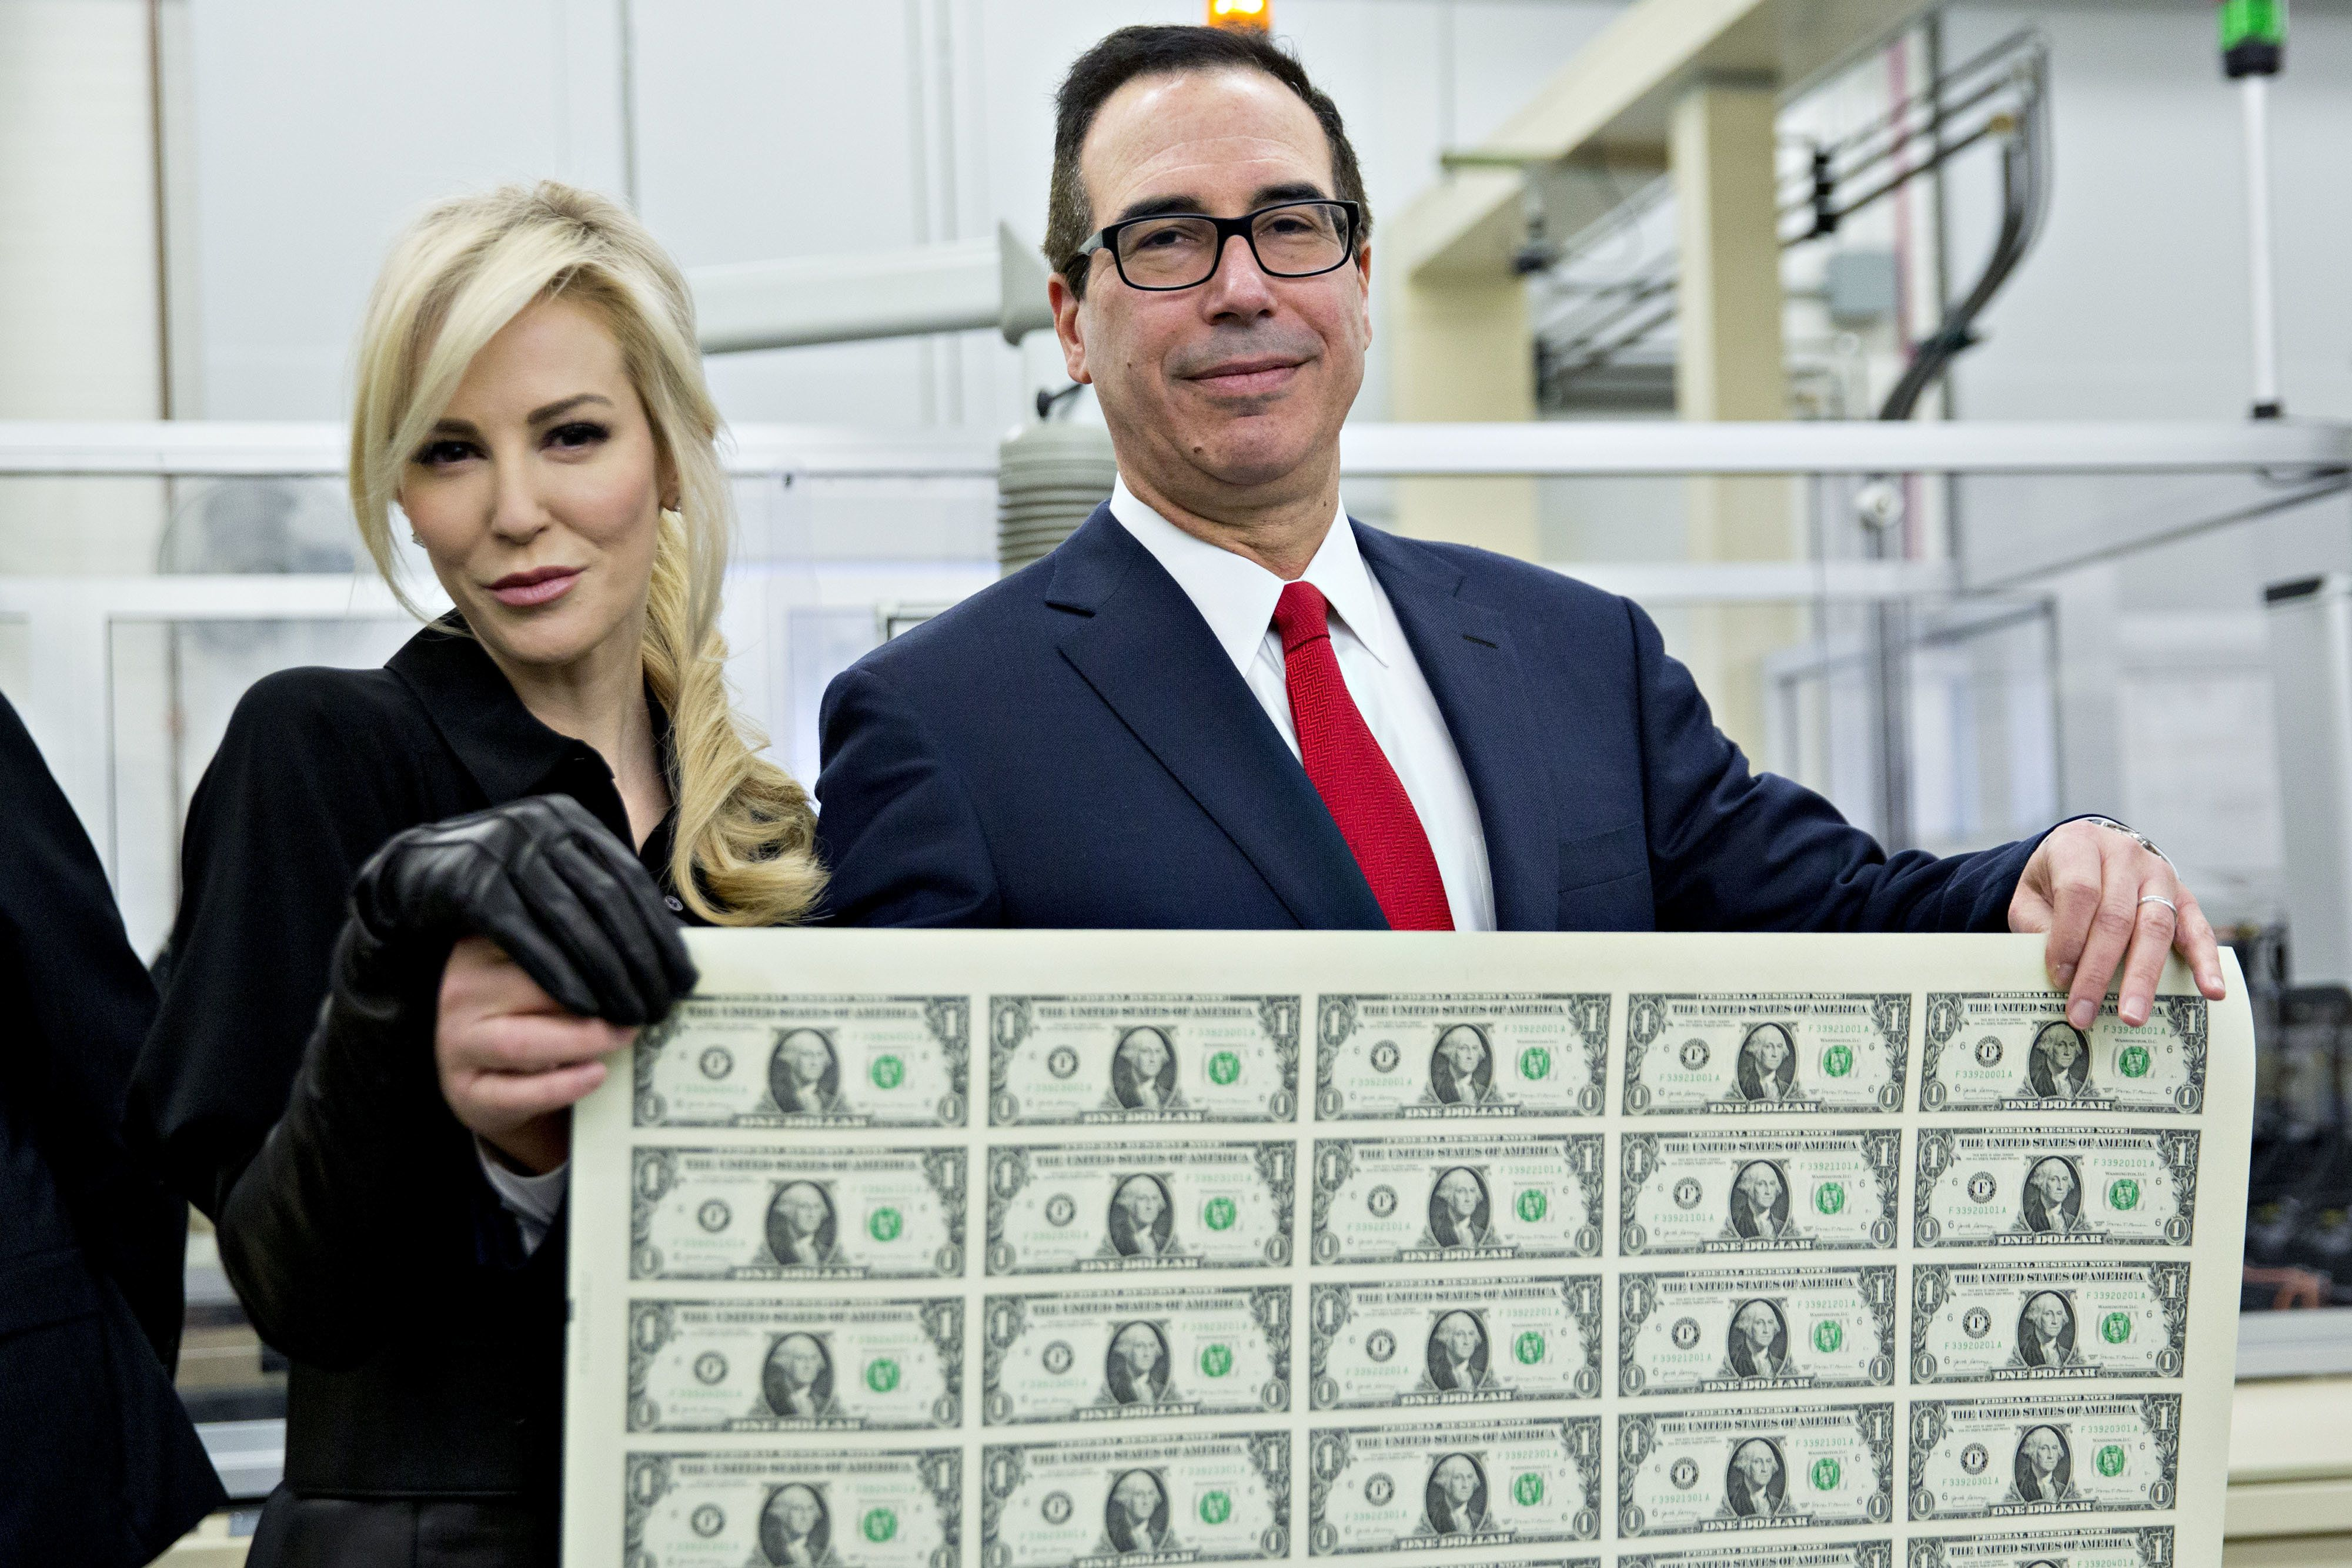 Trump's 'Bond Villains' Posing With Cash Is Twitter's New